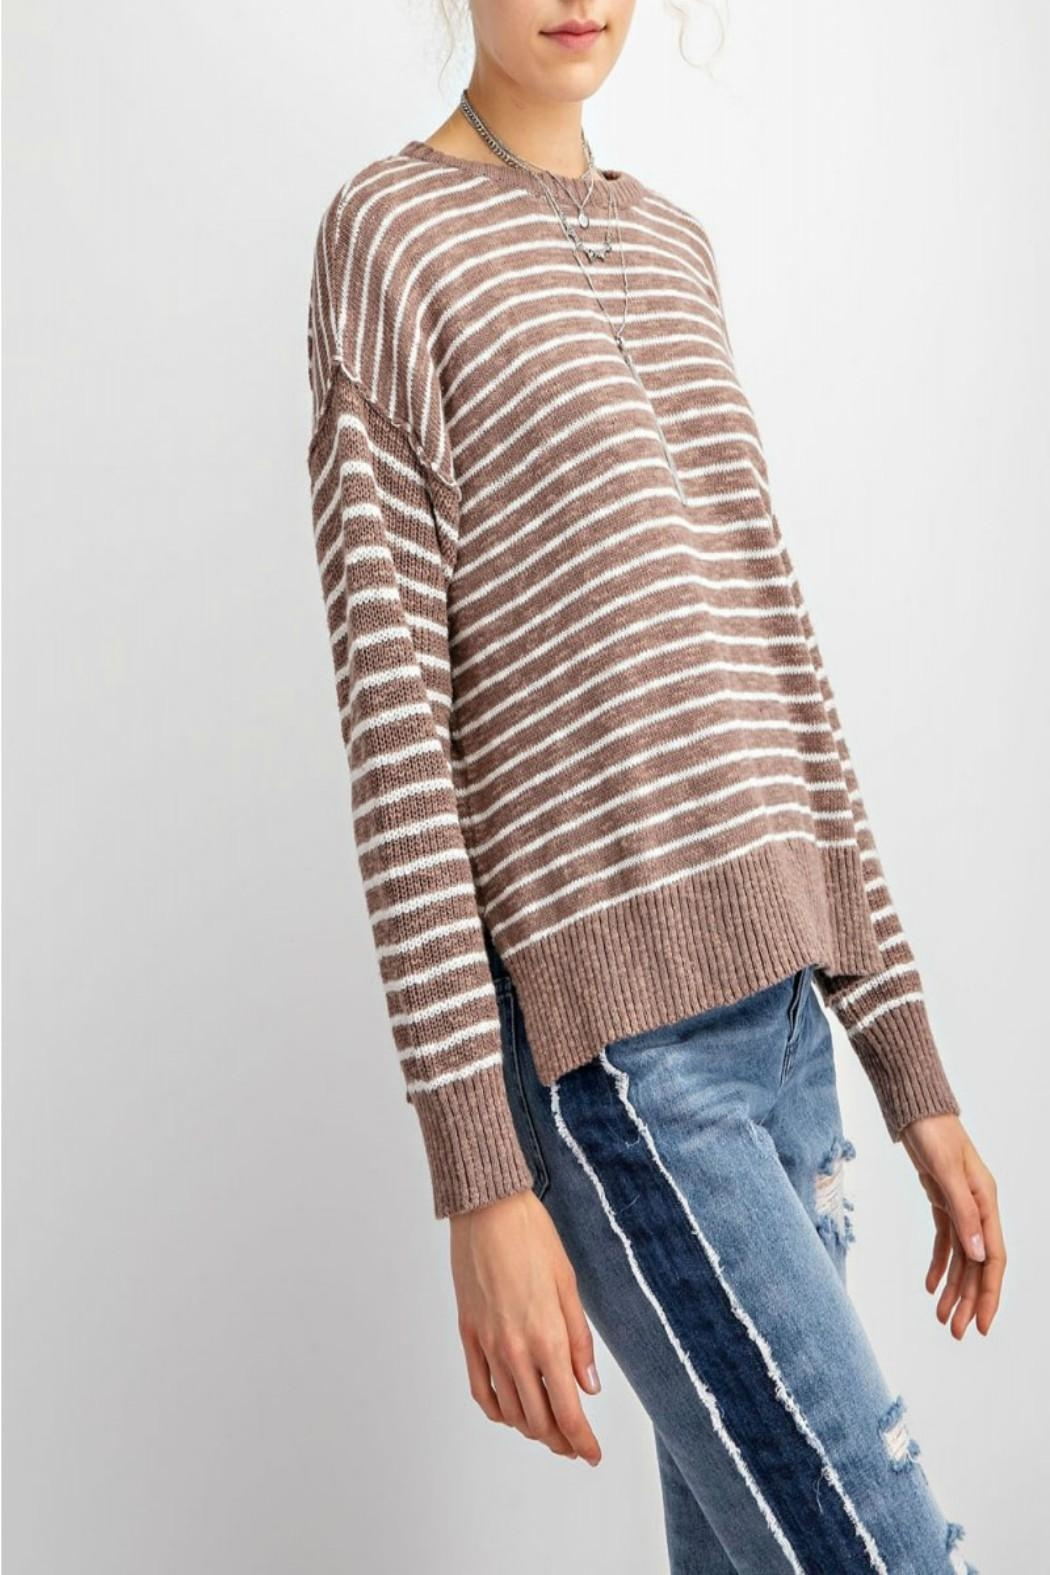 easel Soft Striped Sweater - Back Cropped Image